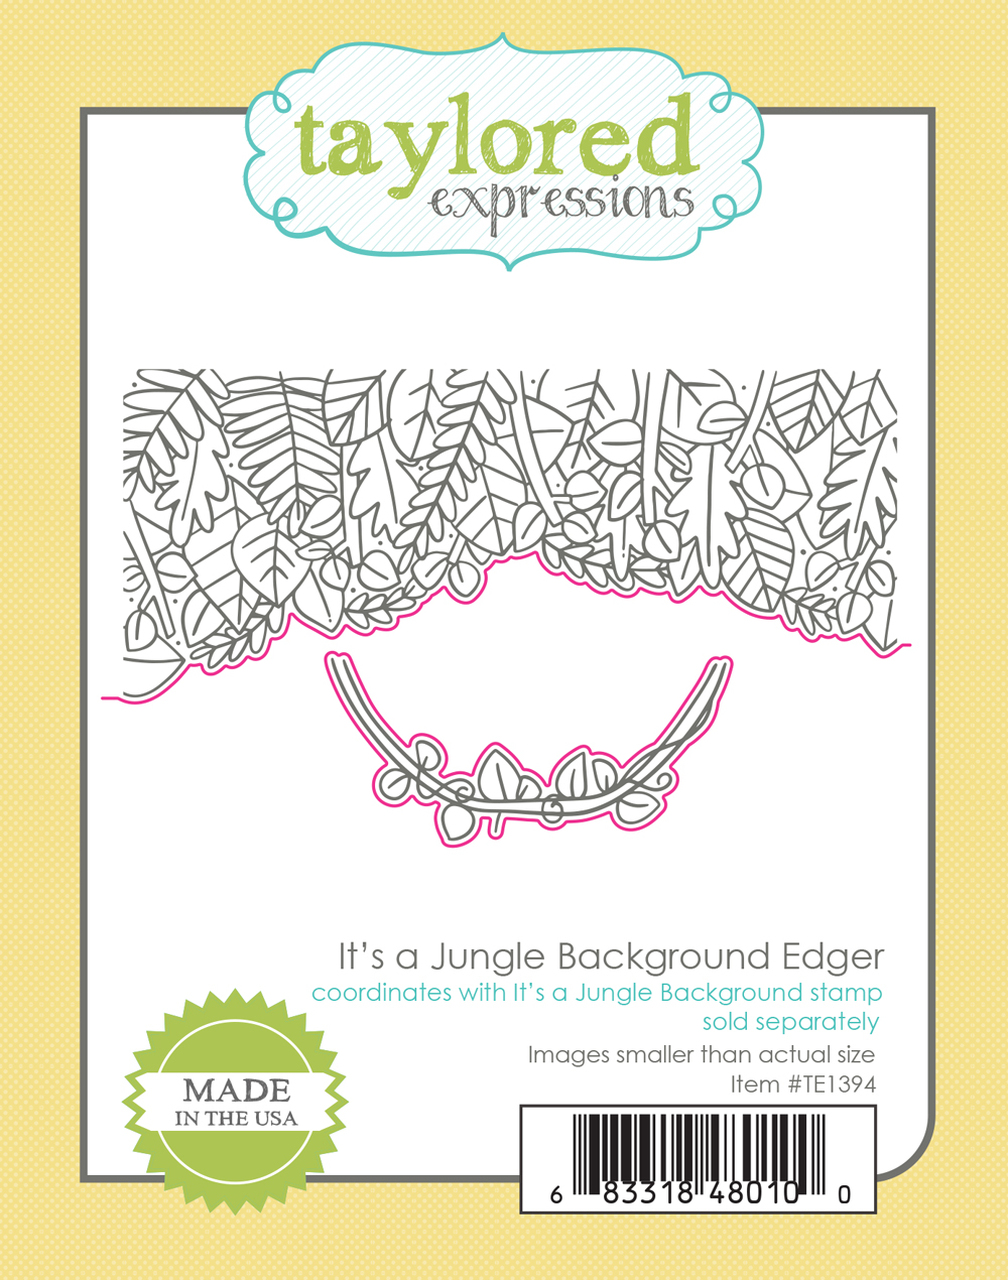 Taylored Expression - It's a Jungle Background Edger